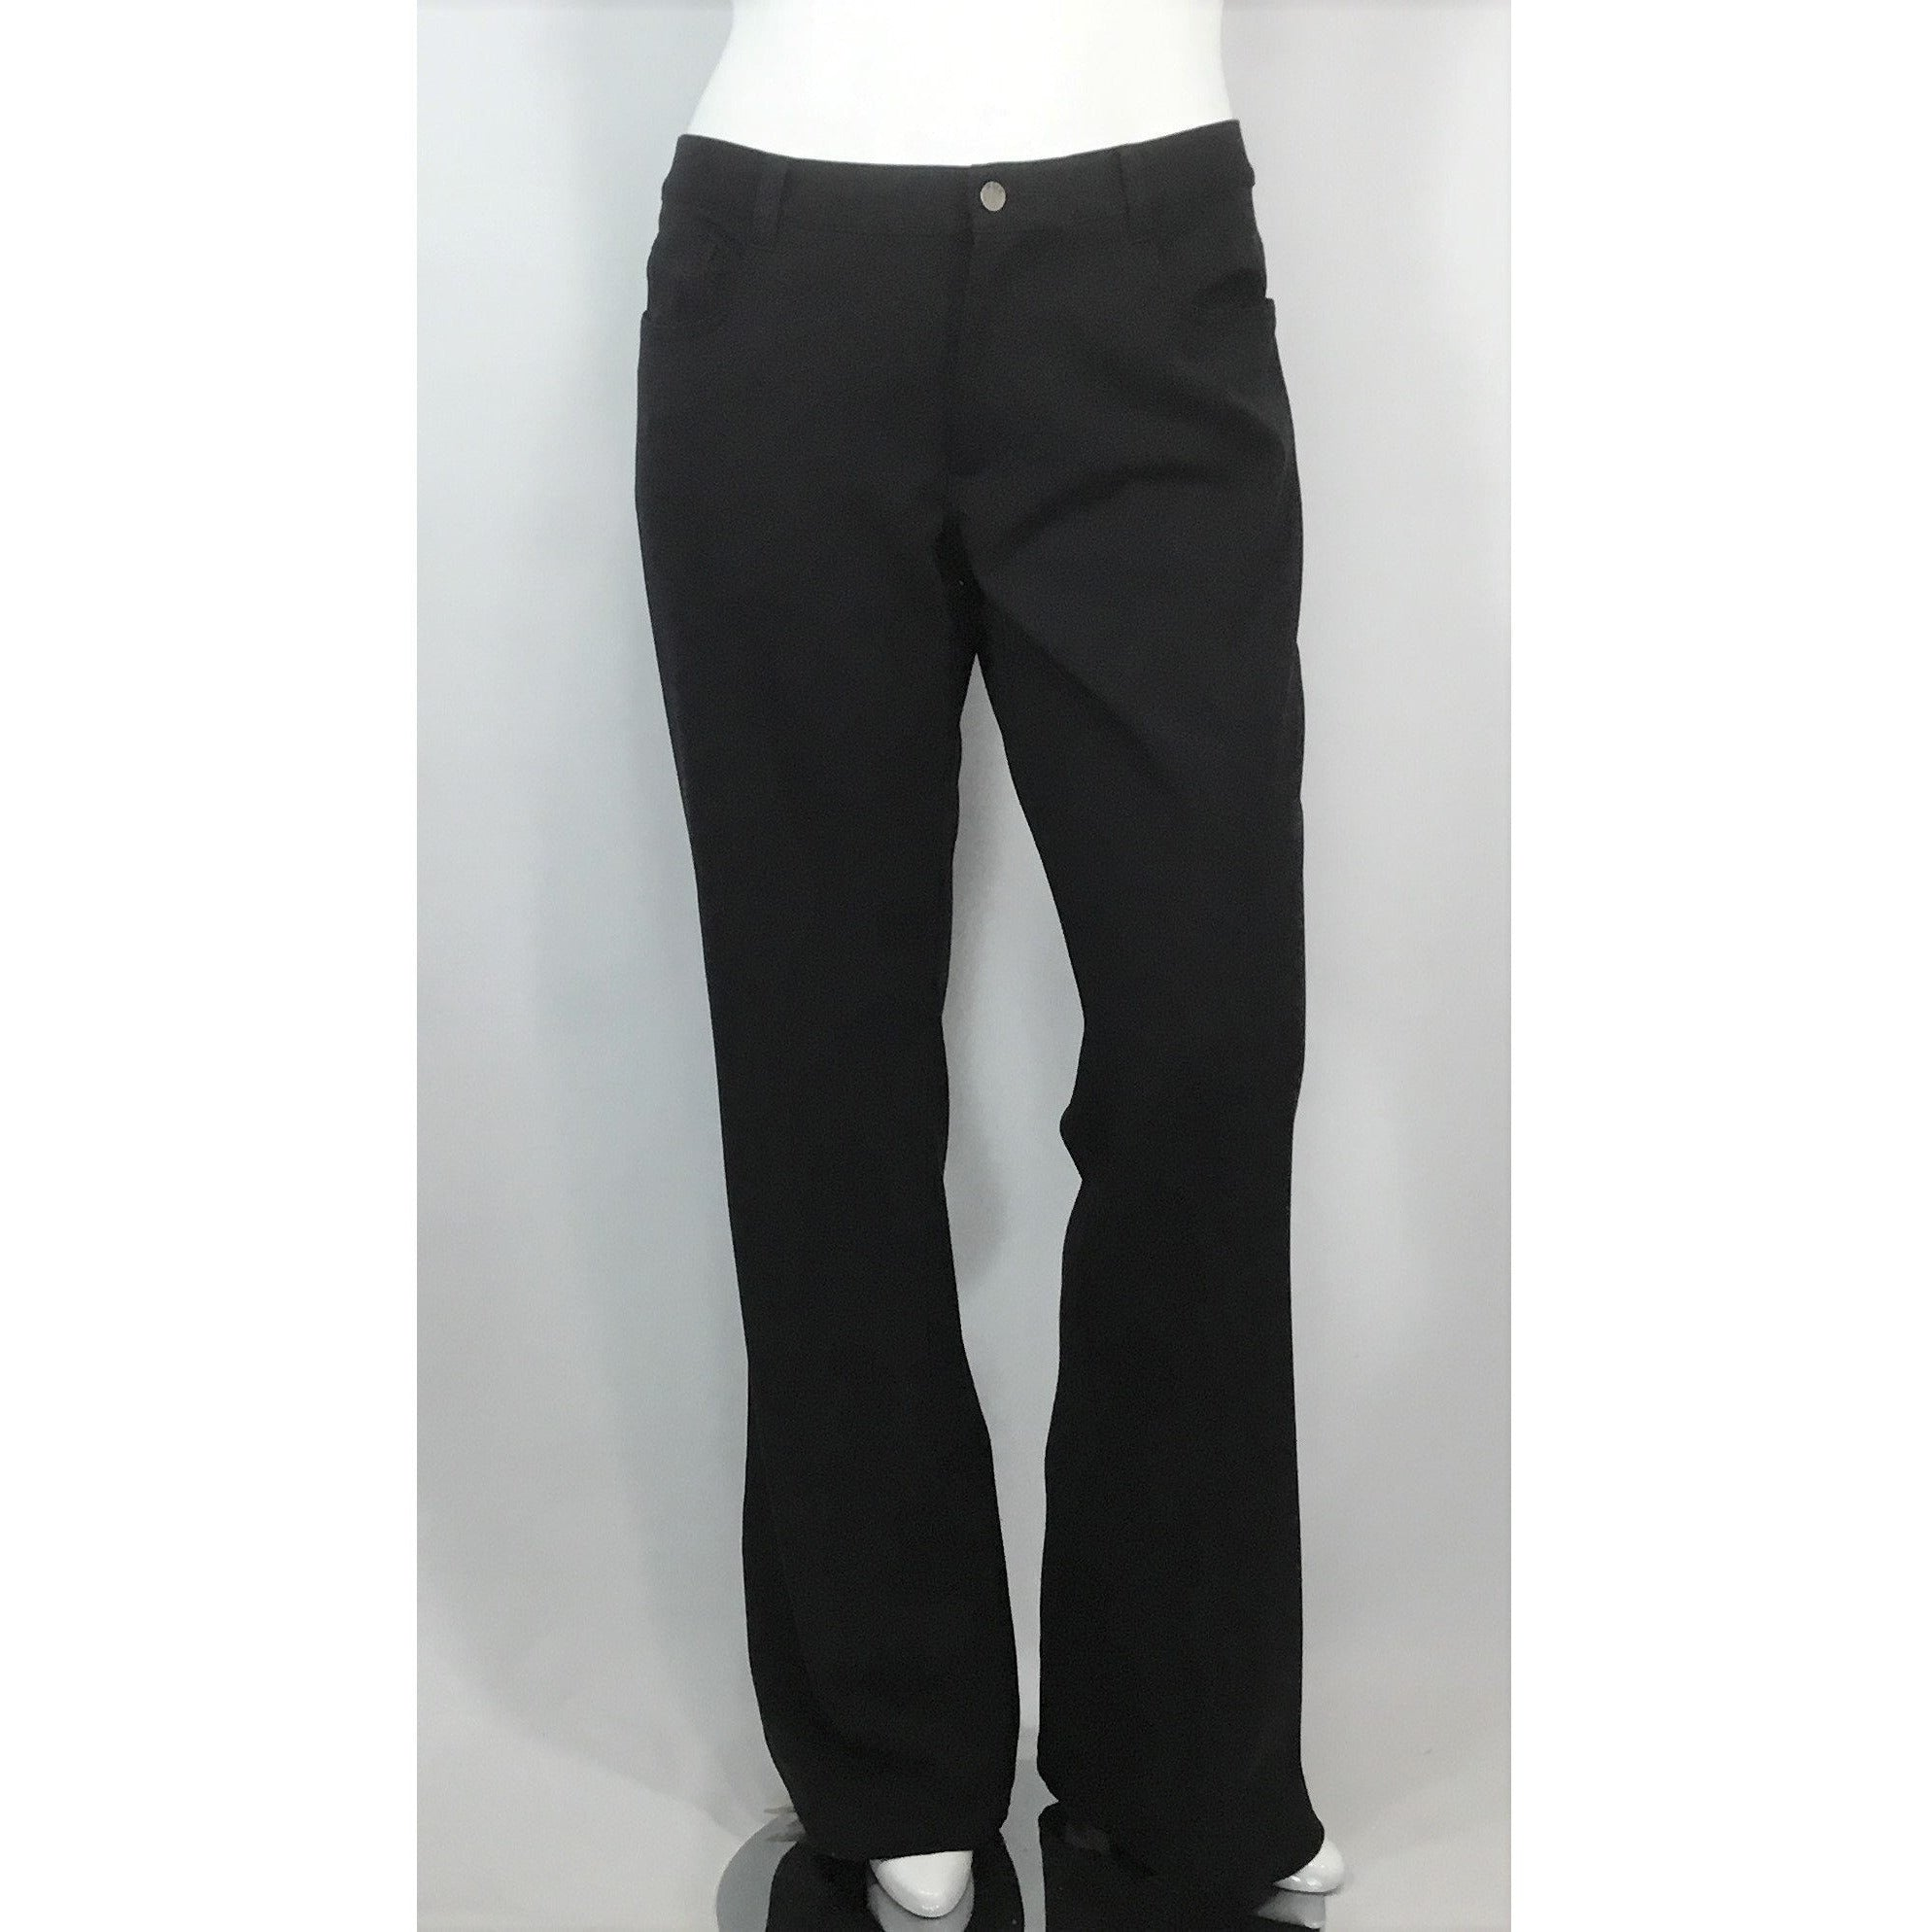 Mexx wide leg black pants